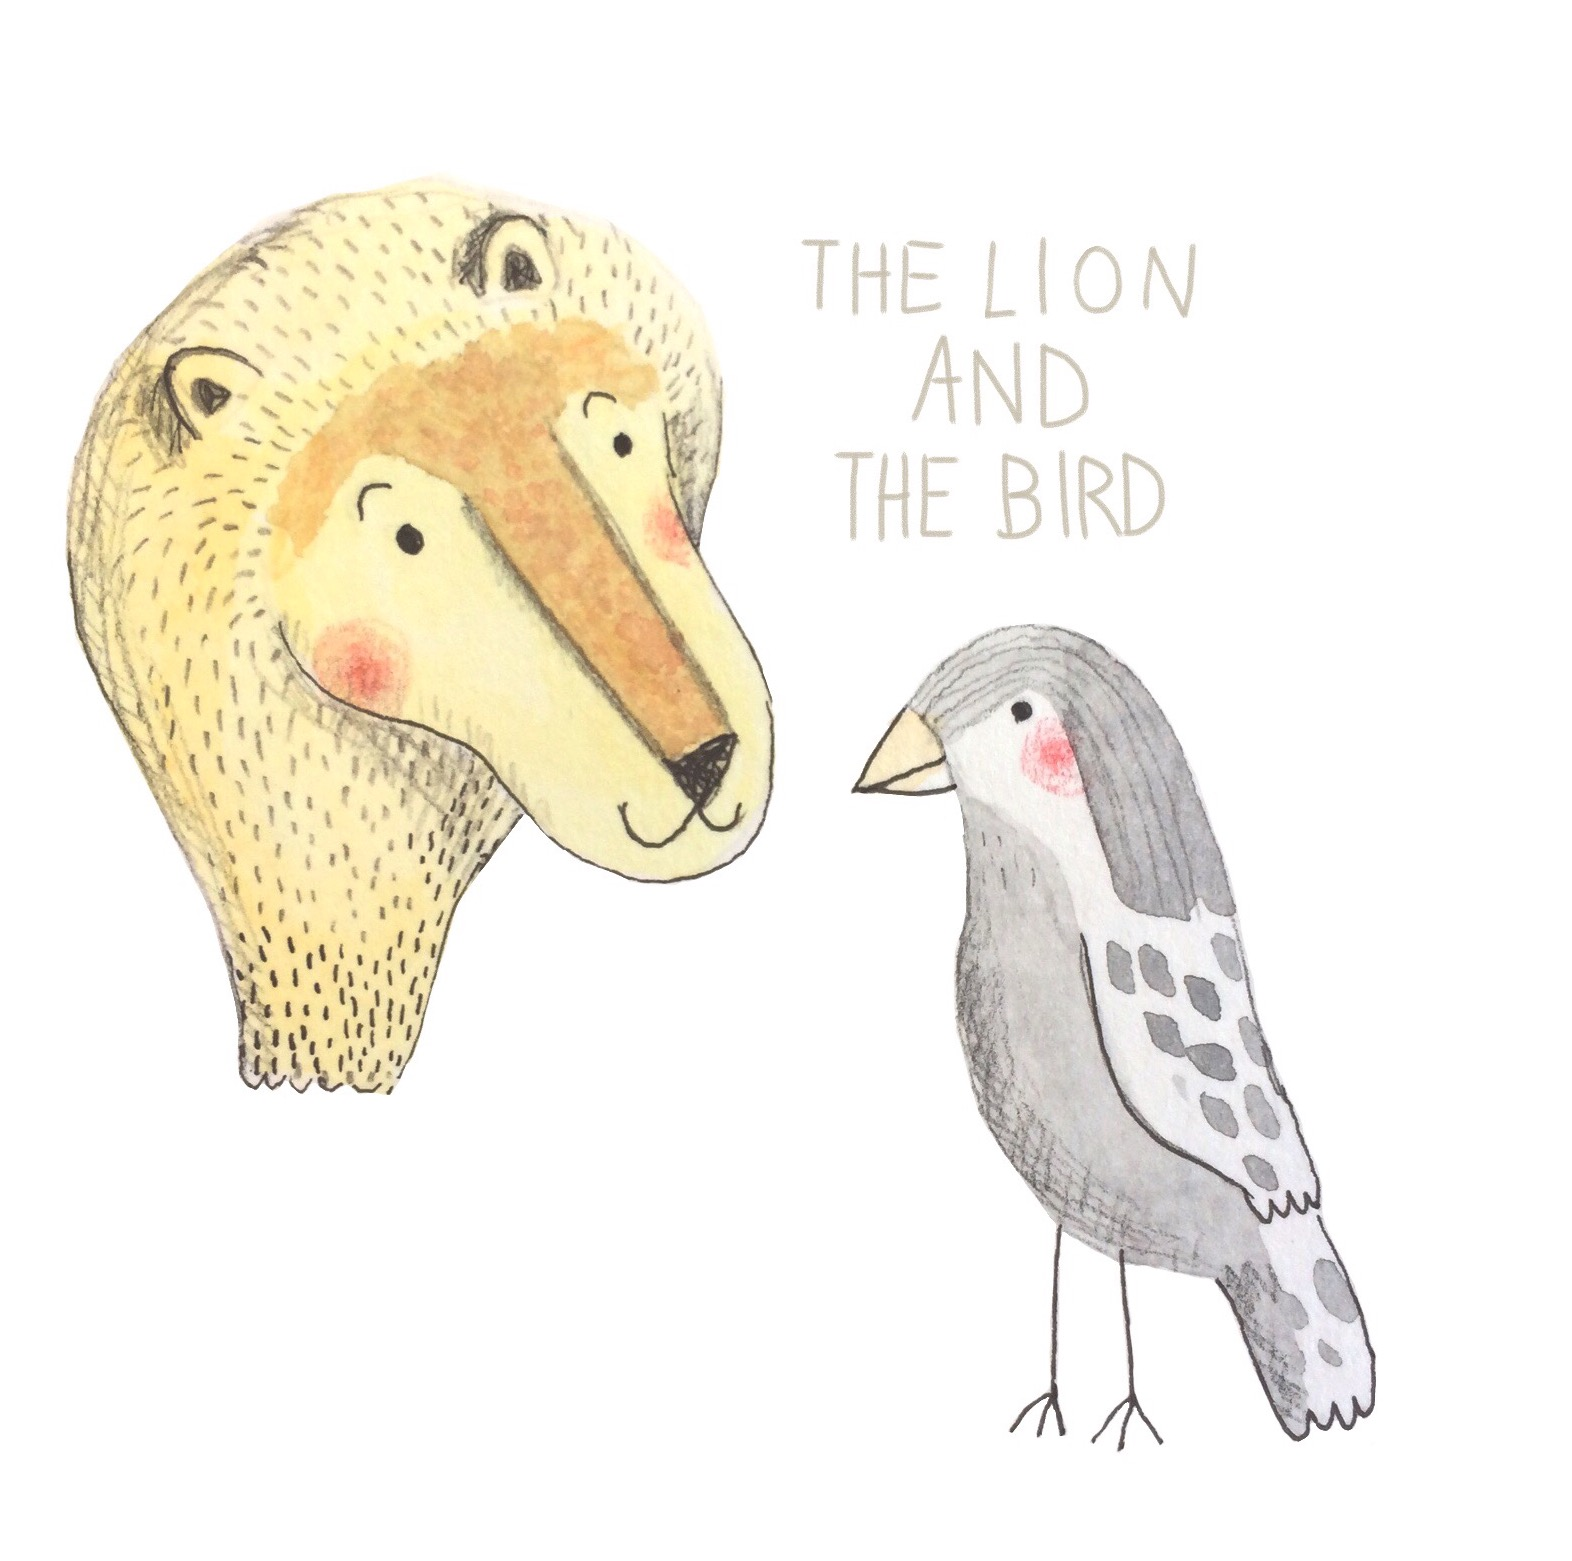 An ode to the Lion and the Bird by Marianne Debuc